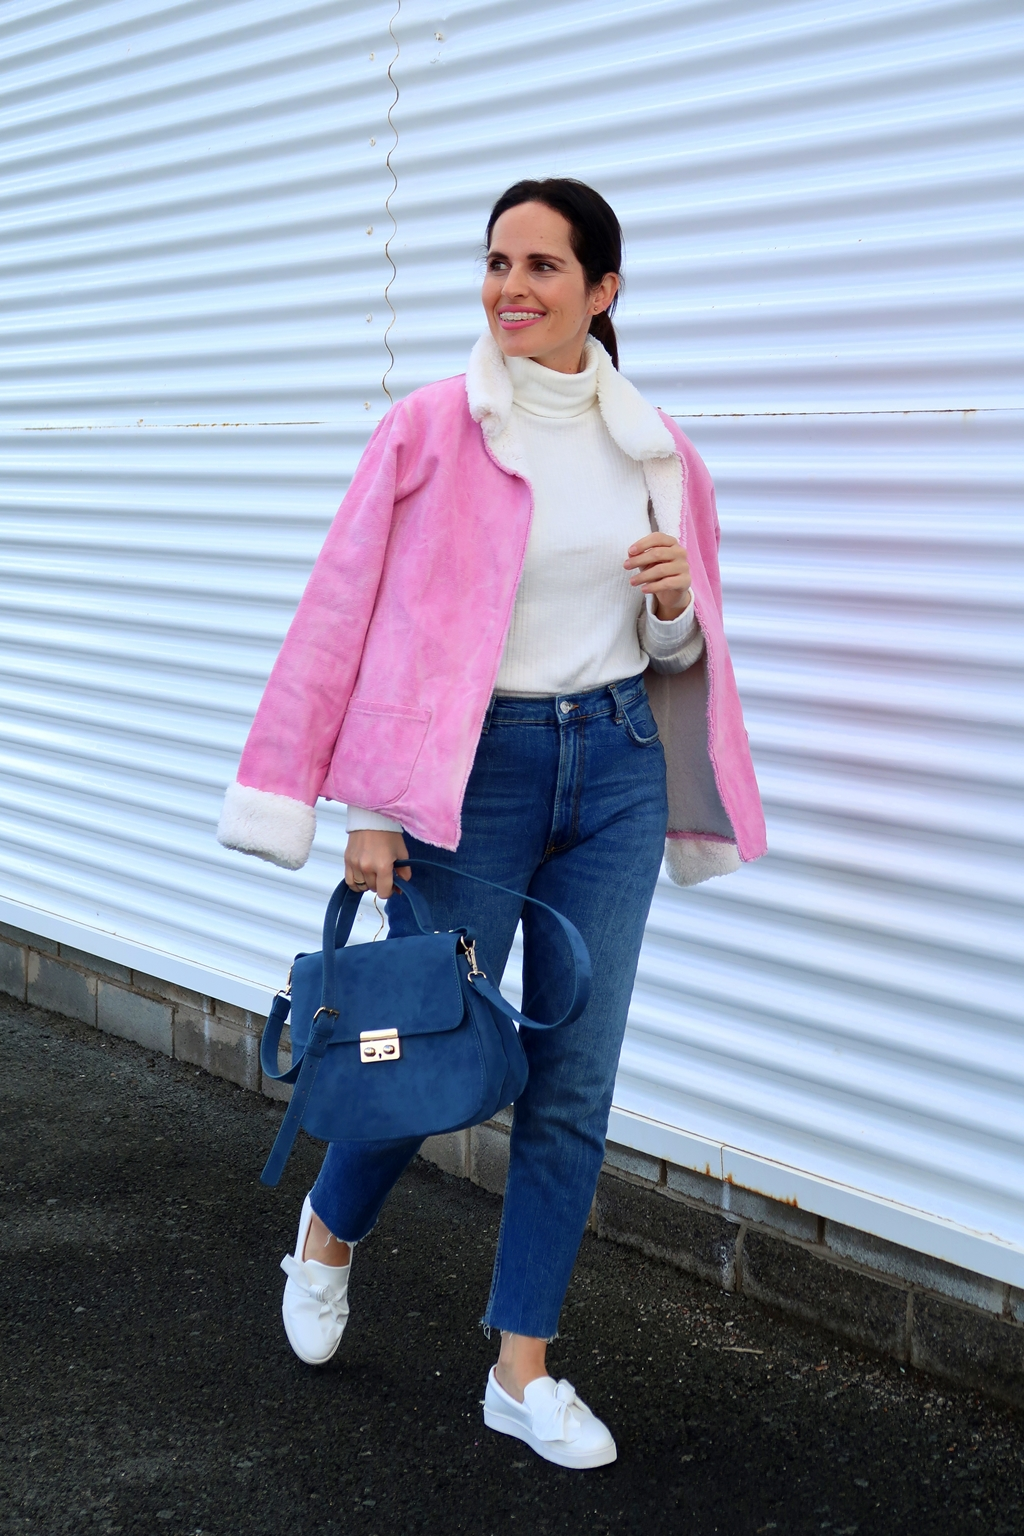 pink-jacket-outfit